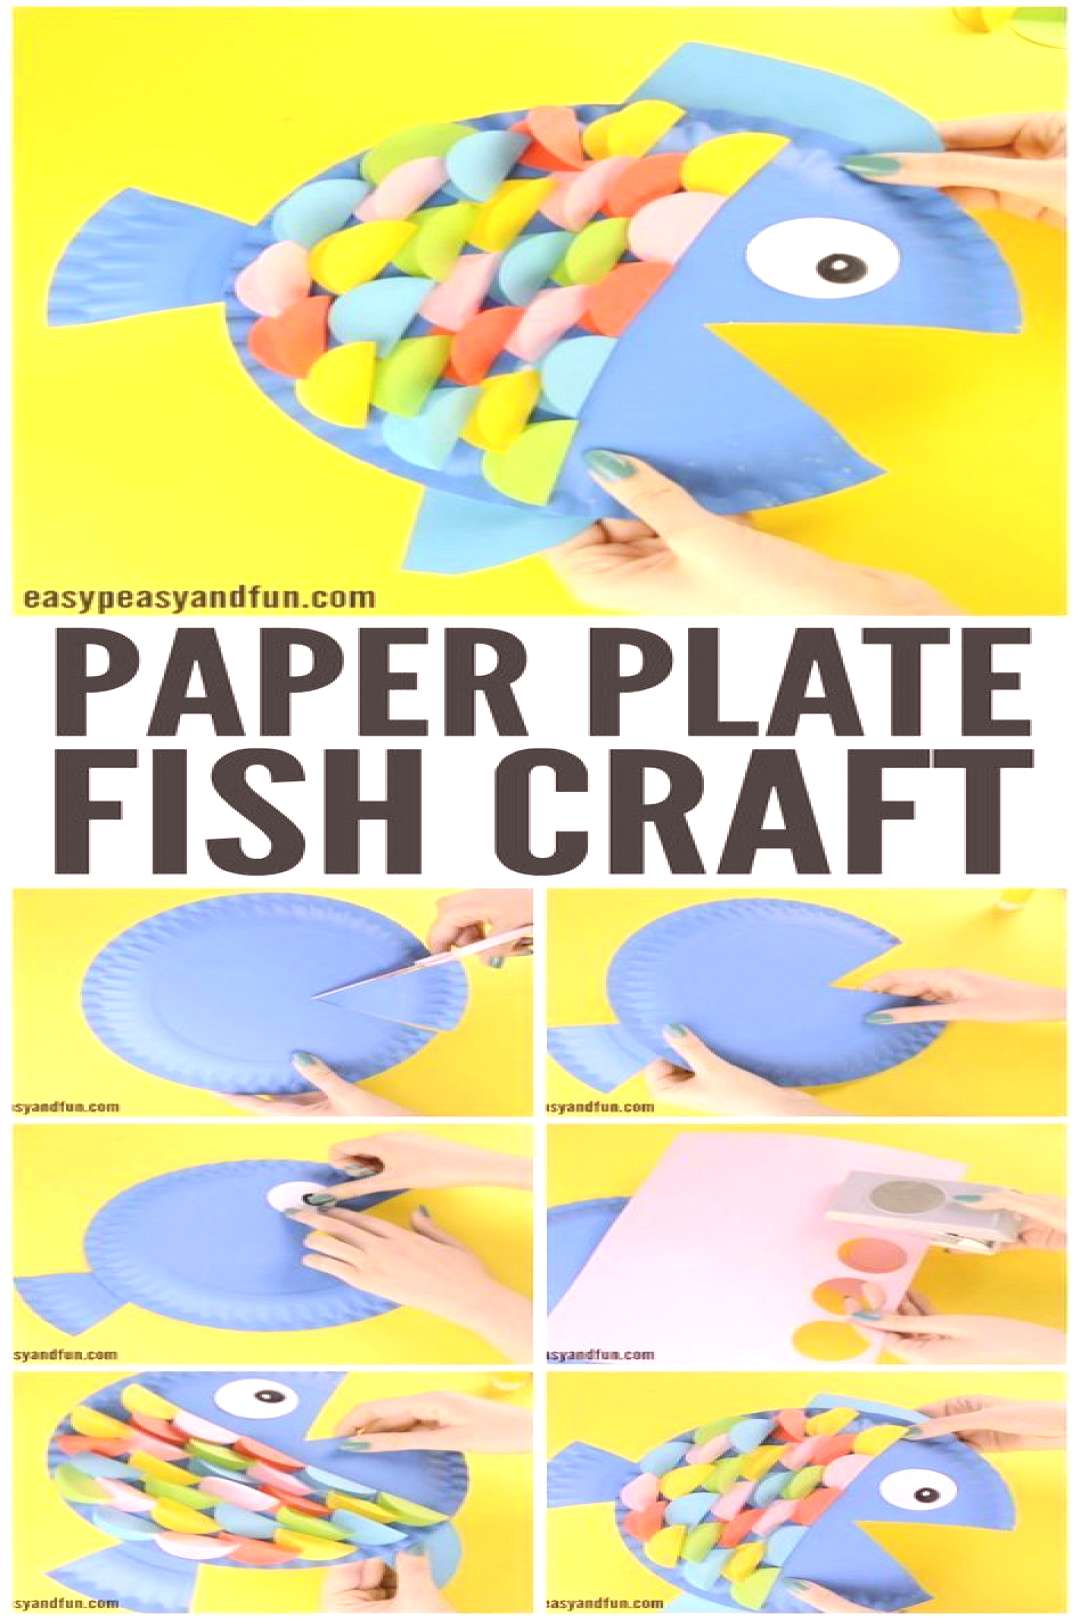 Paper Plate Fish Craft - Rainbow Paper Circles - Easy Peasy and Fun -